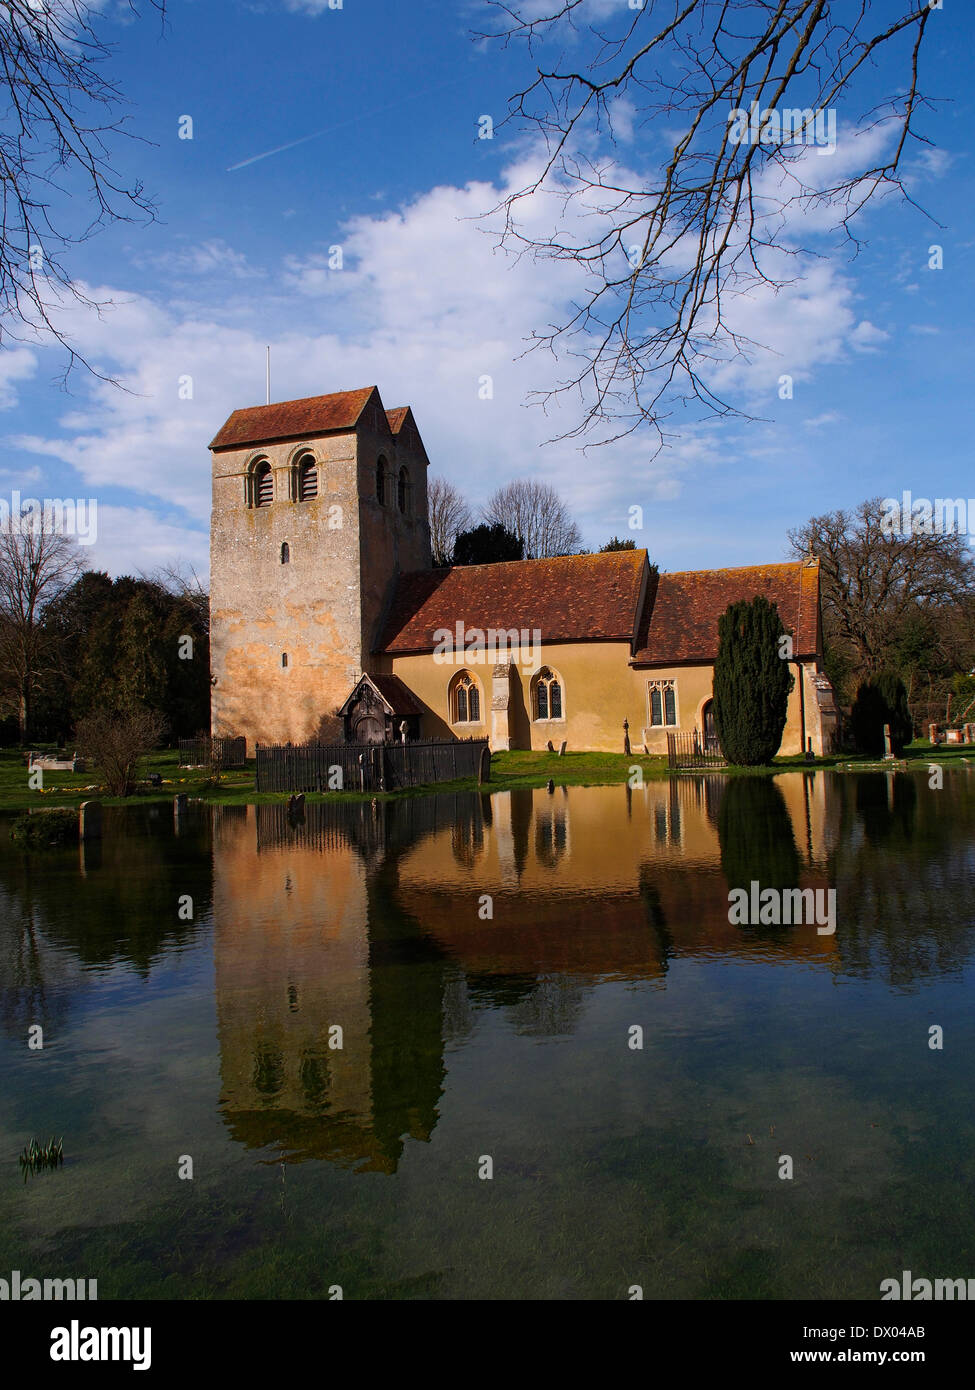 First signs of Spring but the St Bartholomew church in Fingest, Buckinghamshire is still surrounded by flood water - Stock Image